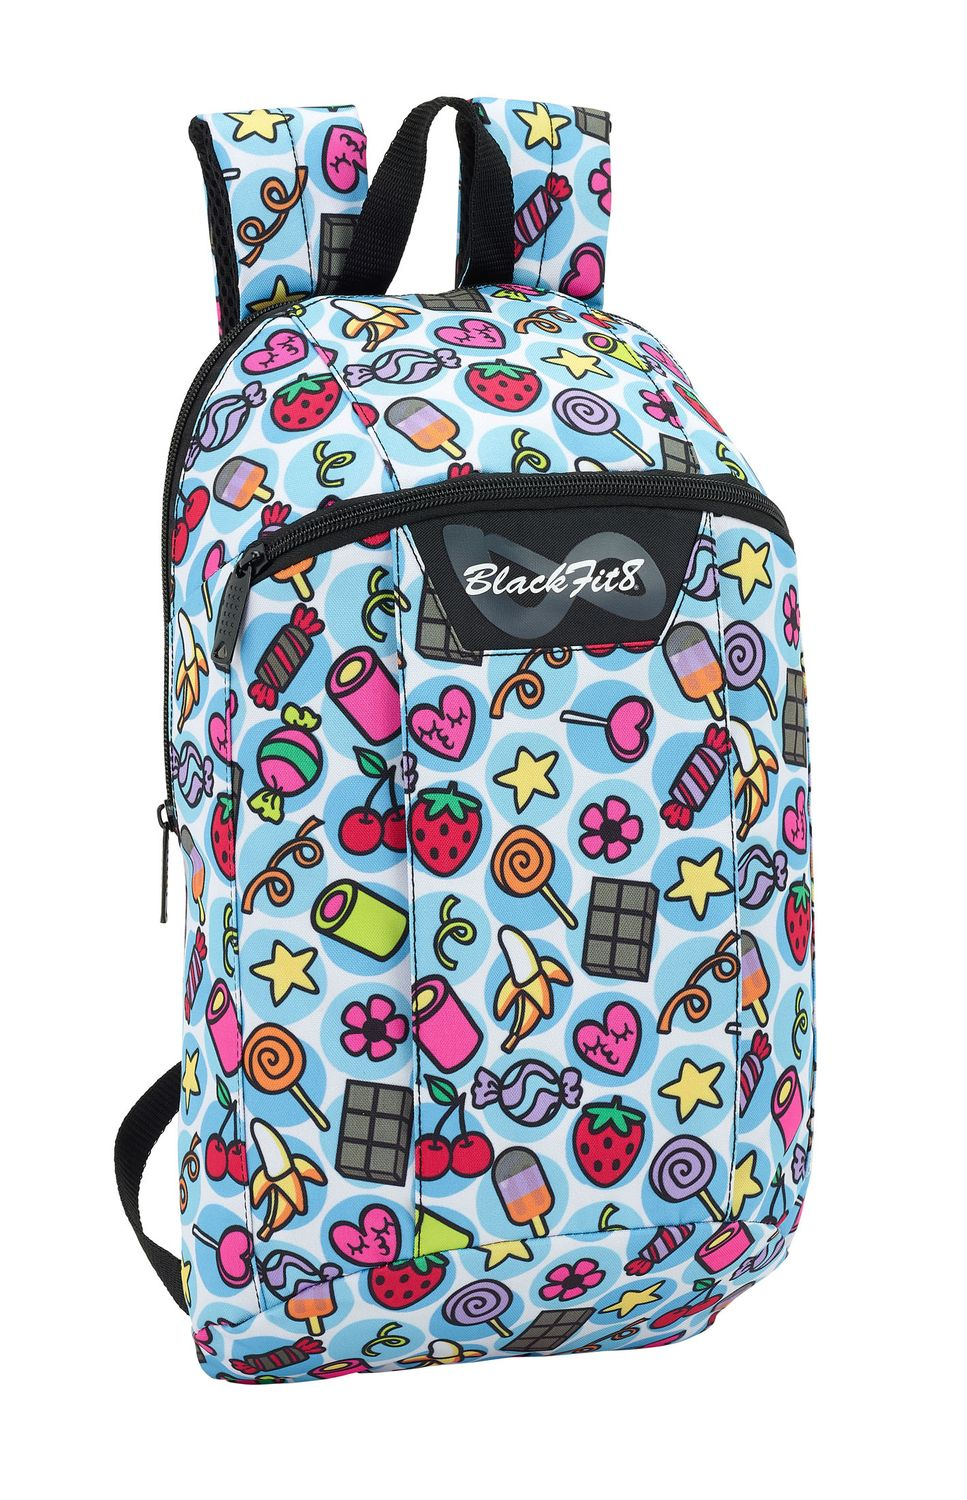 Blackfit8 Sweet Slim Backpack 39cm – image 1